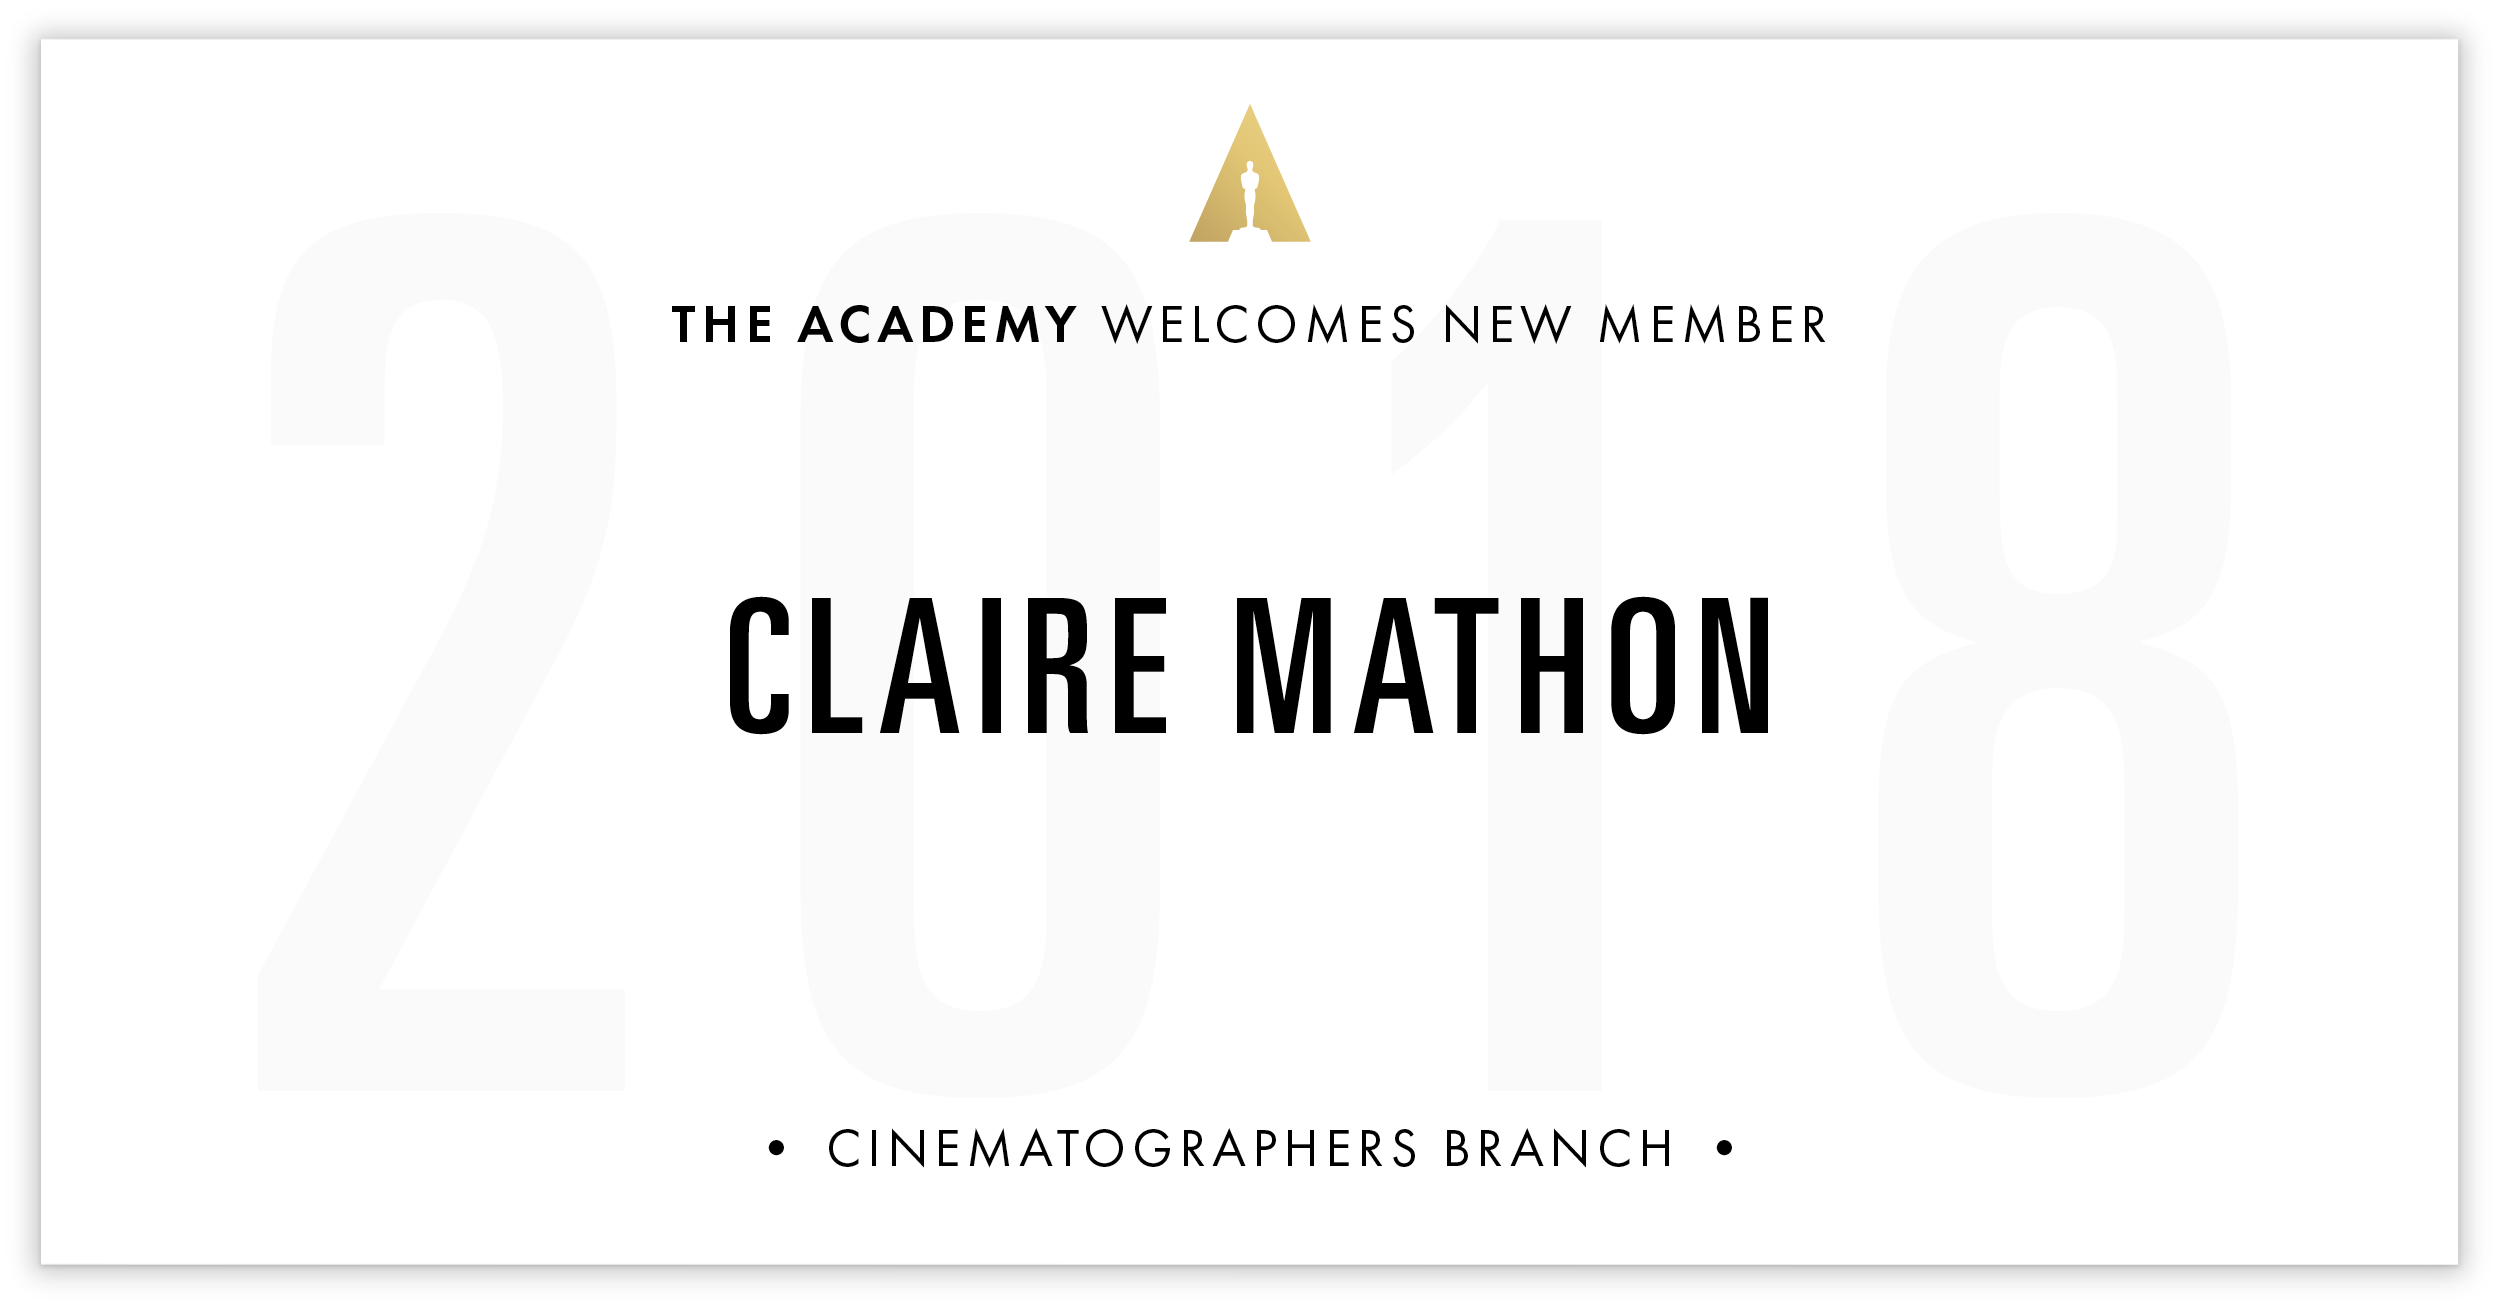 Claire Mathon is invited!